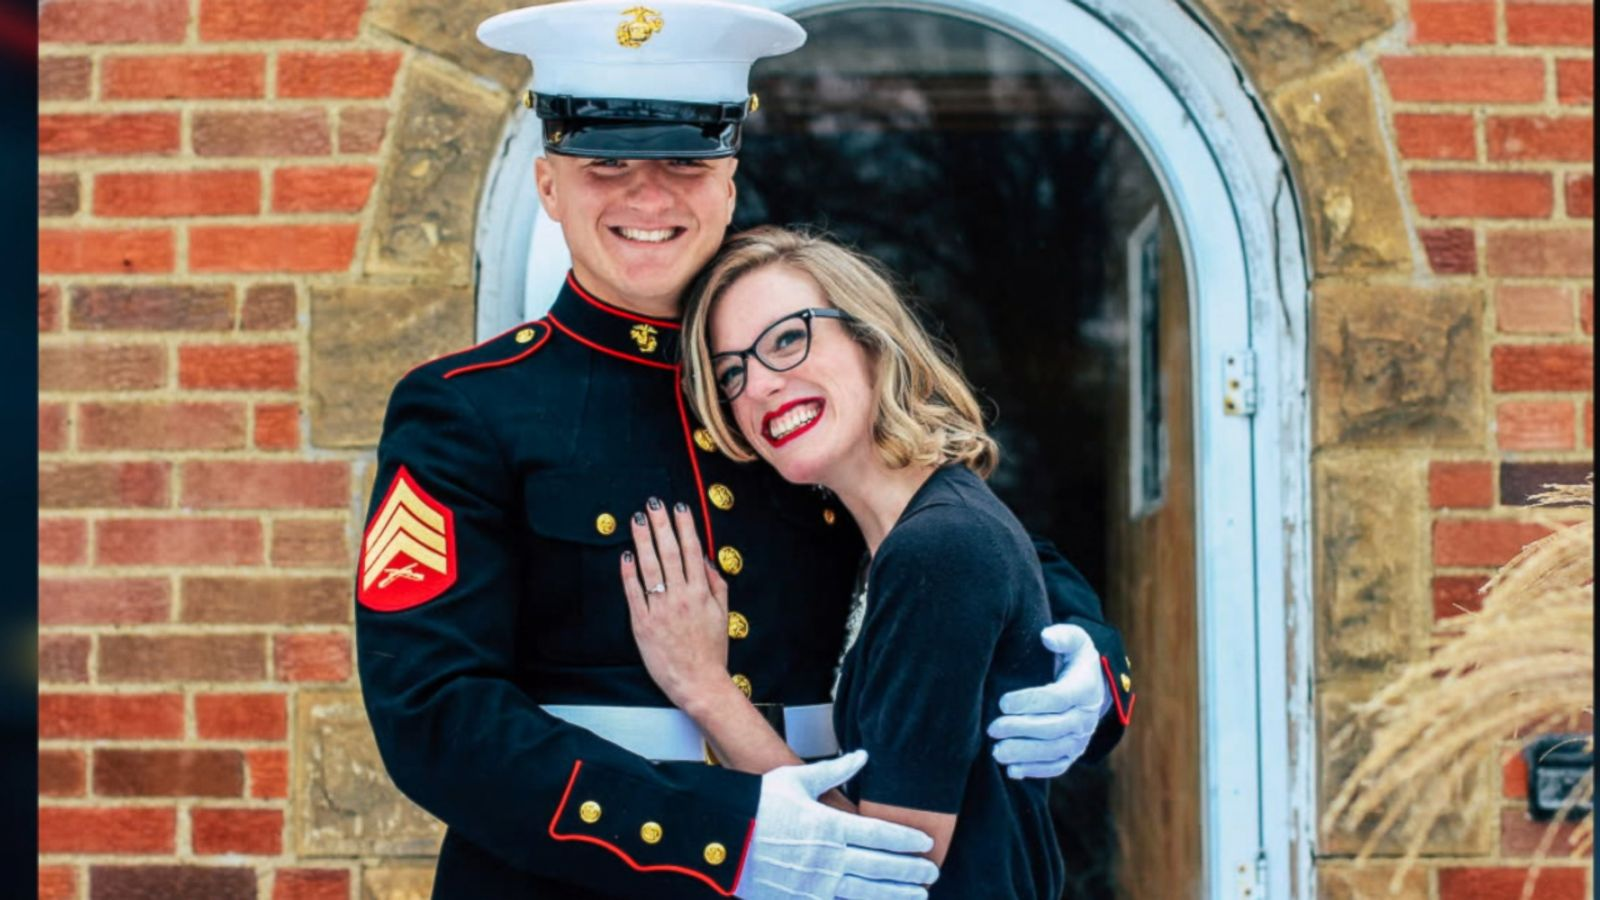 Jon Trommer, a Marine, surprised his girlfriend, Mandy Wehe, by popping the question on her snowy doorstep.